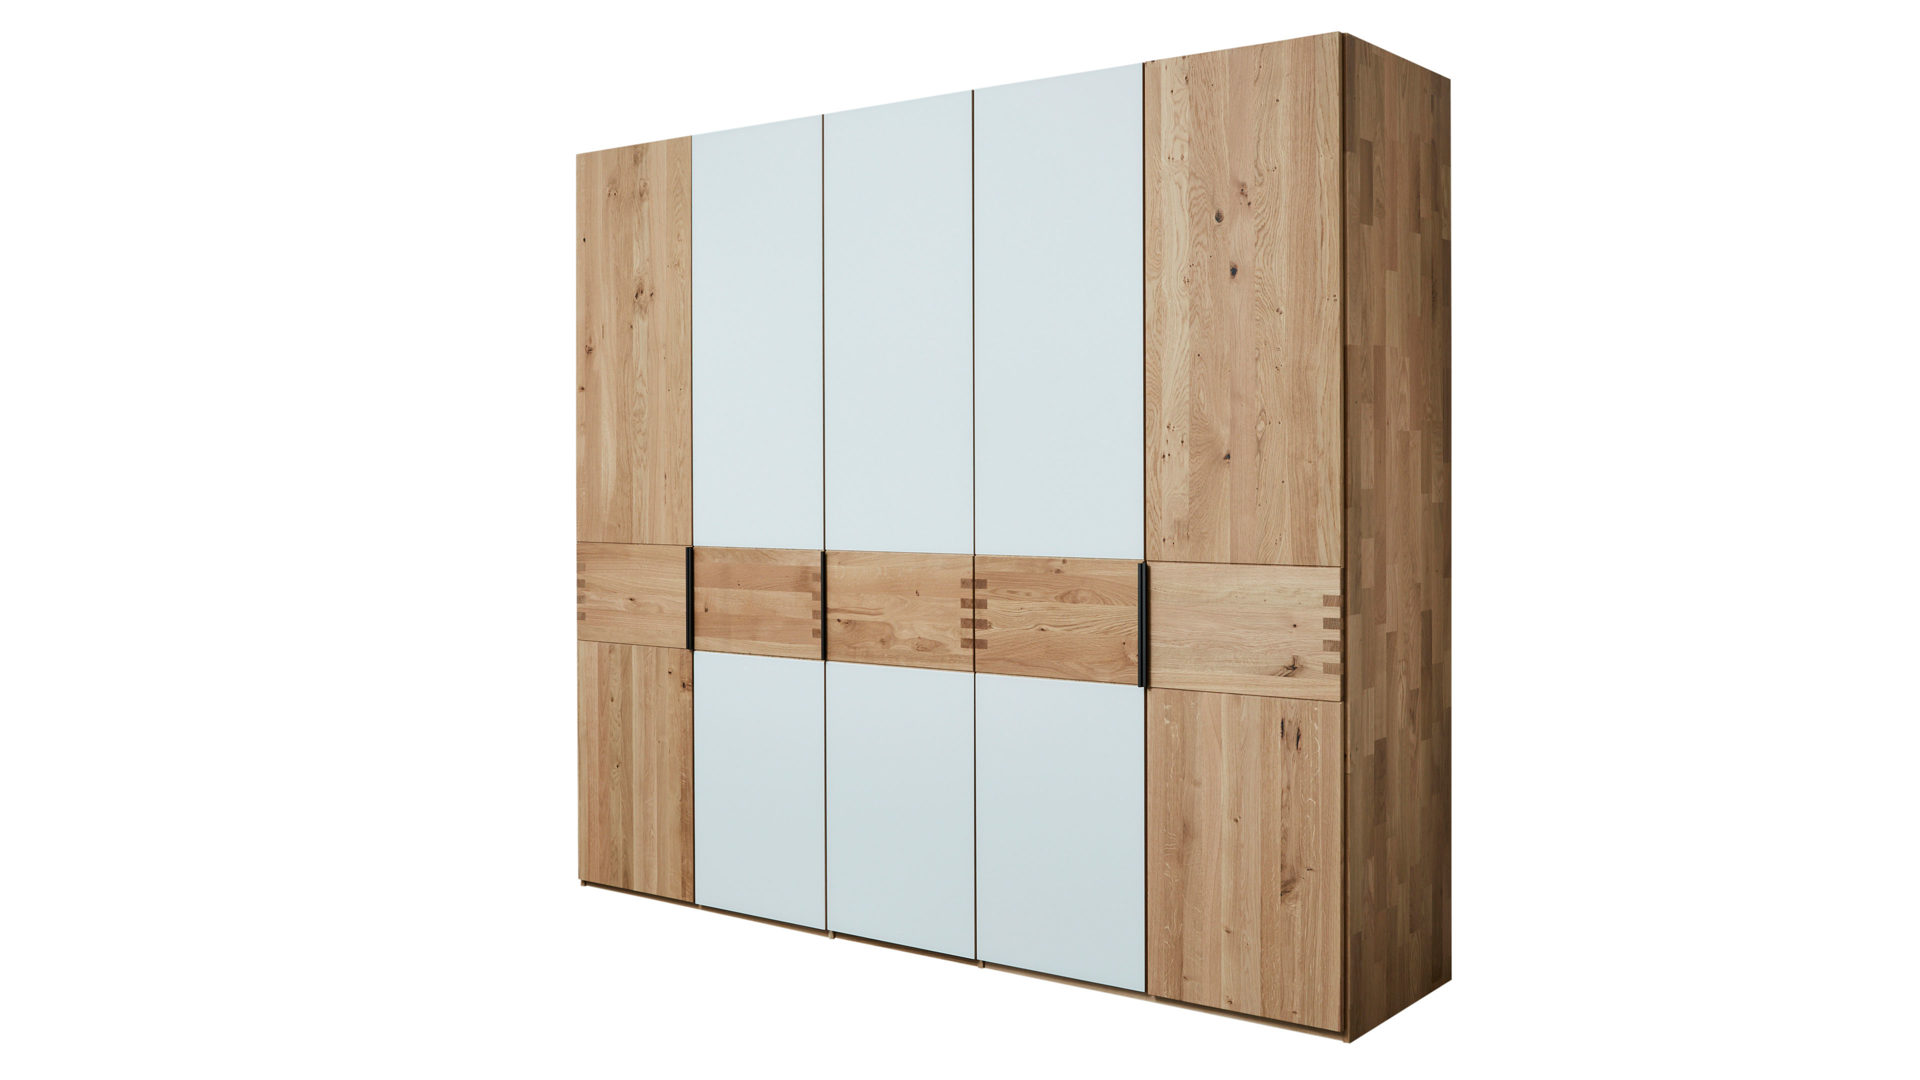 Kleiderschrank Interliving aus Holz in Weiß Interliving Schlafzimmer Serie 1015 – Kleiderschrank 7005 magnolienfarbenes Mattglas & Wildeiche – fünftürig, Höhe ca. 240 cm